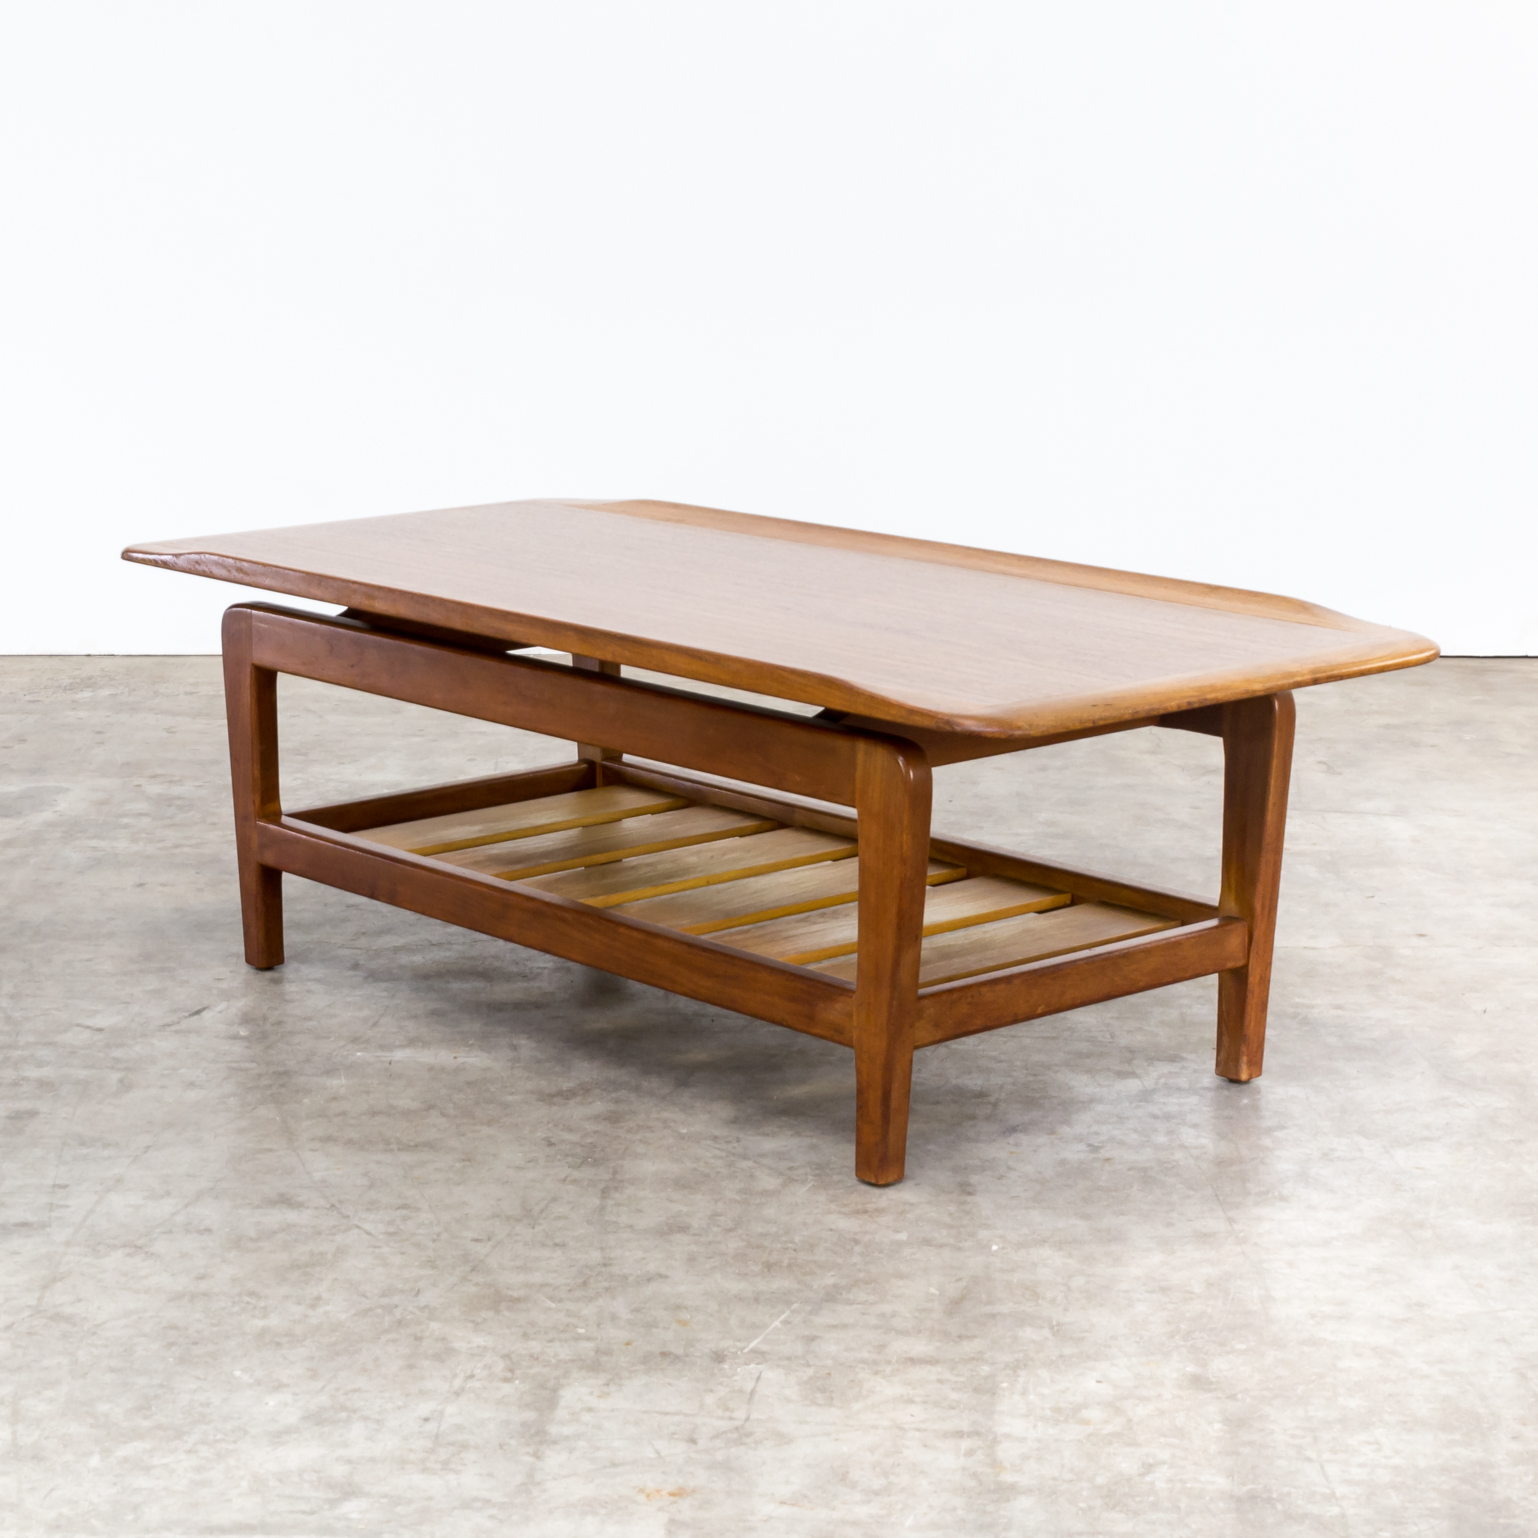 60s large and firm danish design coffee table barbmama for 60s table design